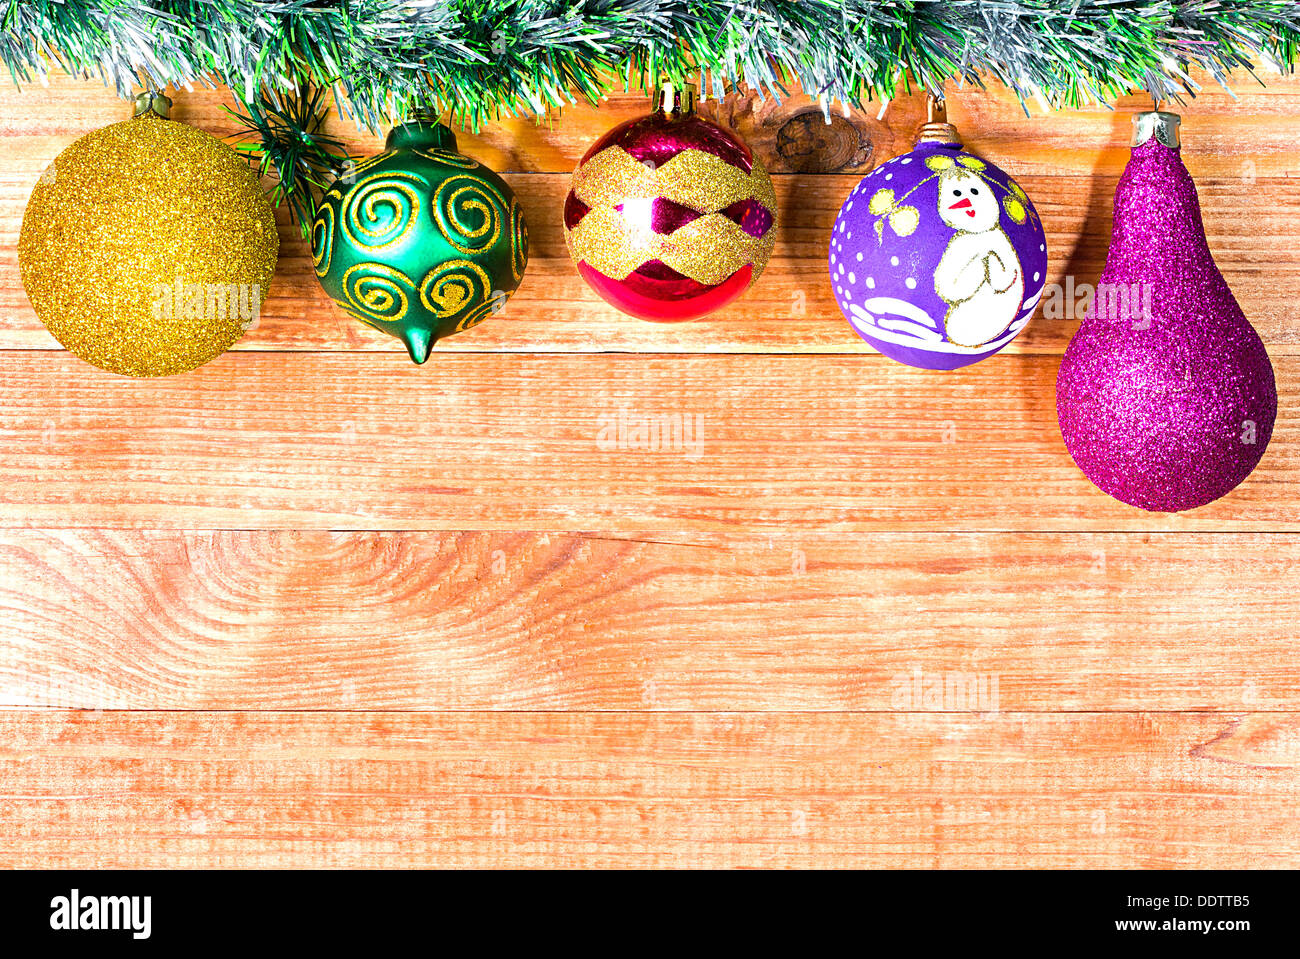 Christmas Border With Decoration New Year S Toys On A Wooden Stock